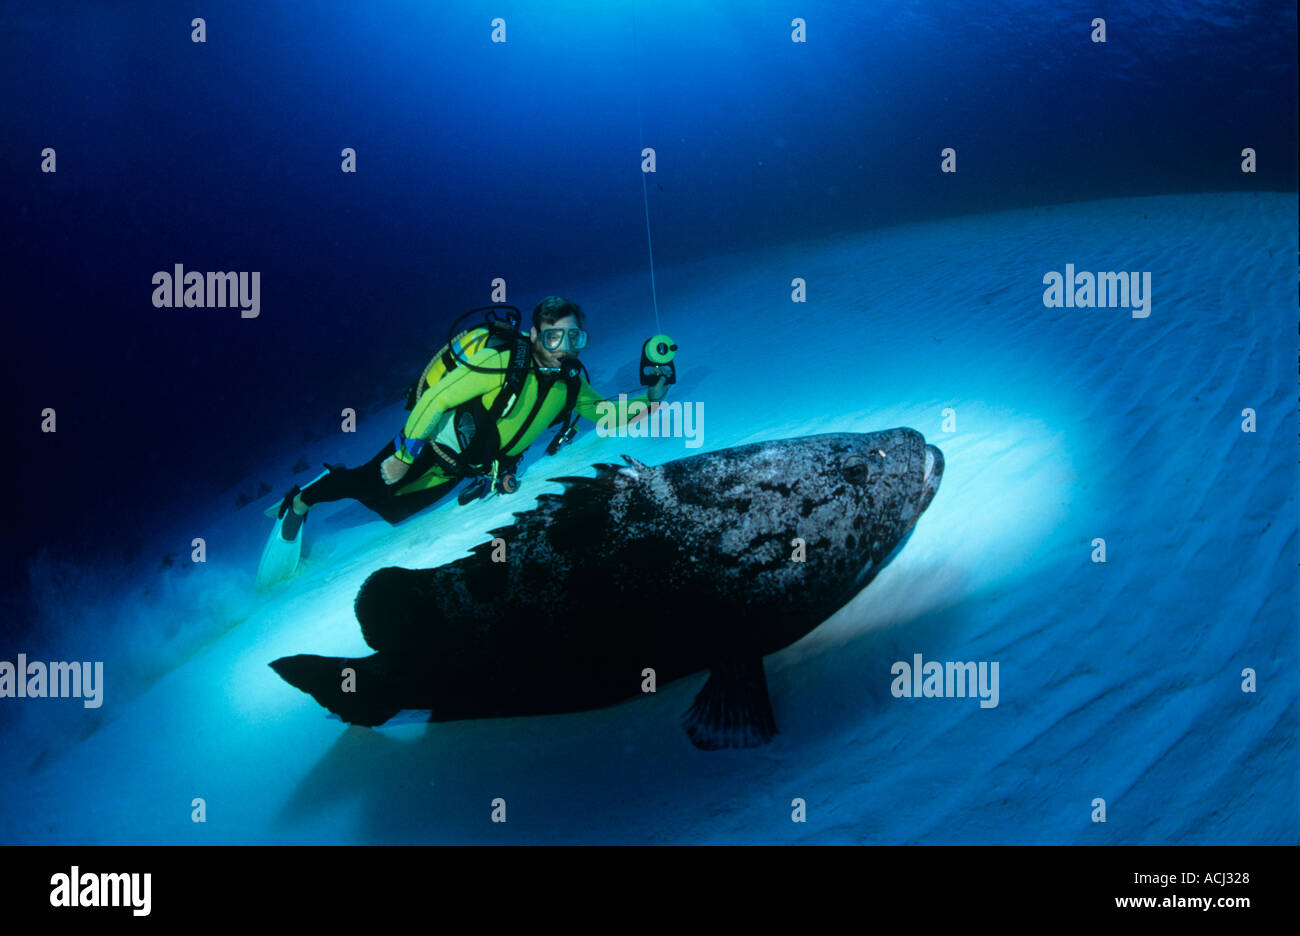 Potato grouper rare due to overfishing for live fish market Aldabra Seychelles - Stock Image